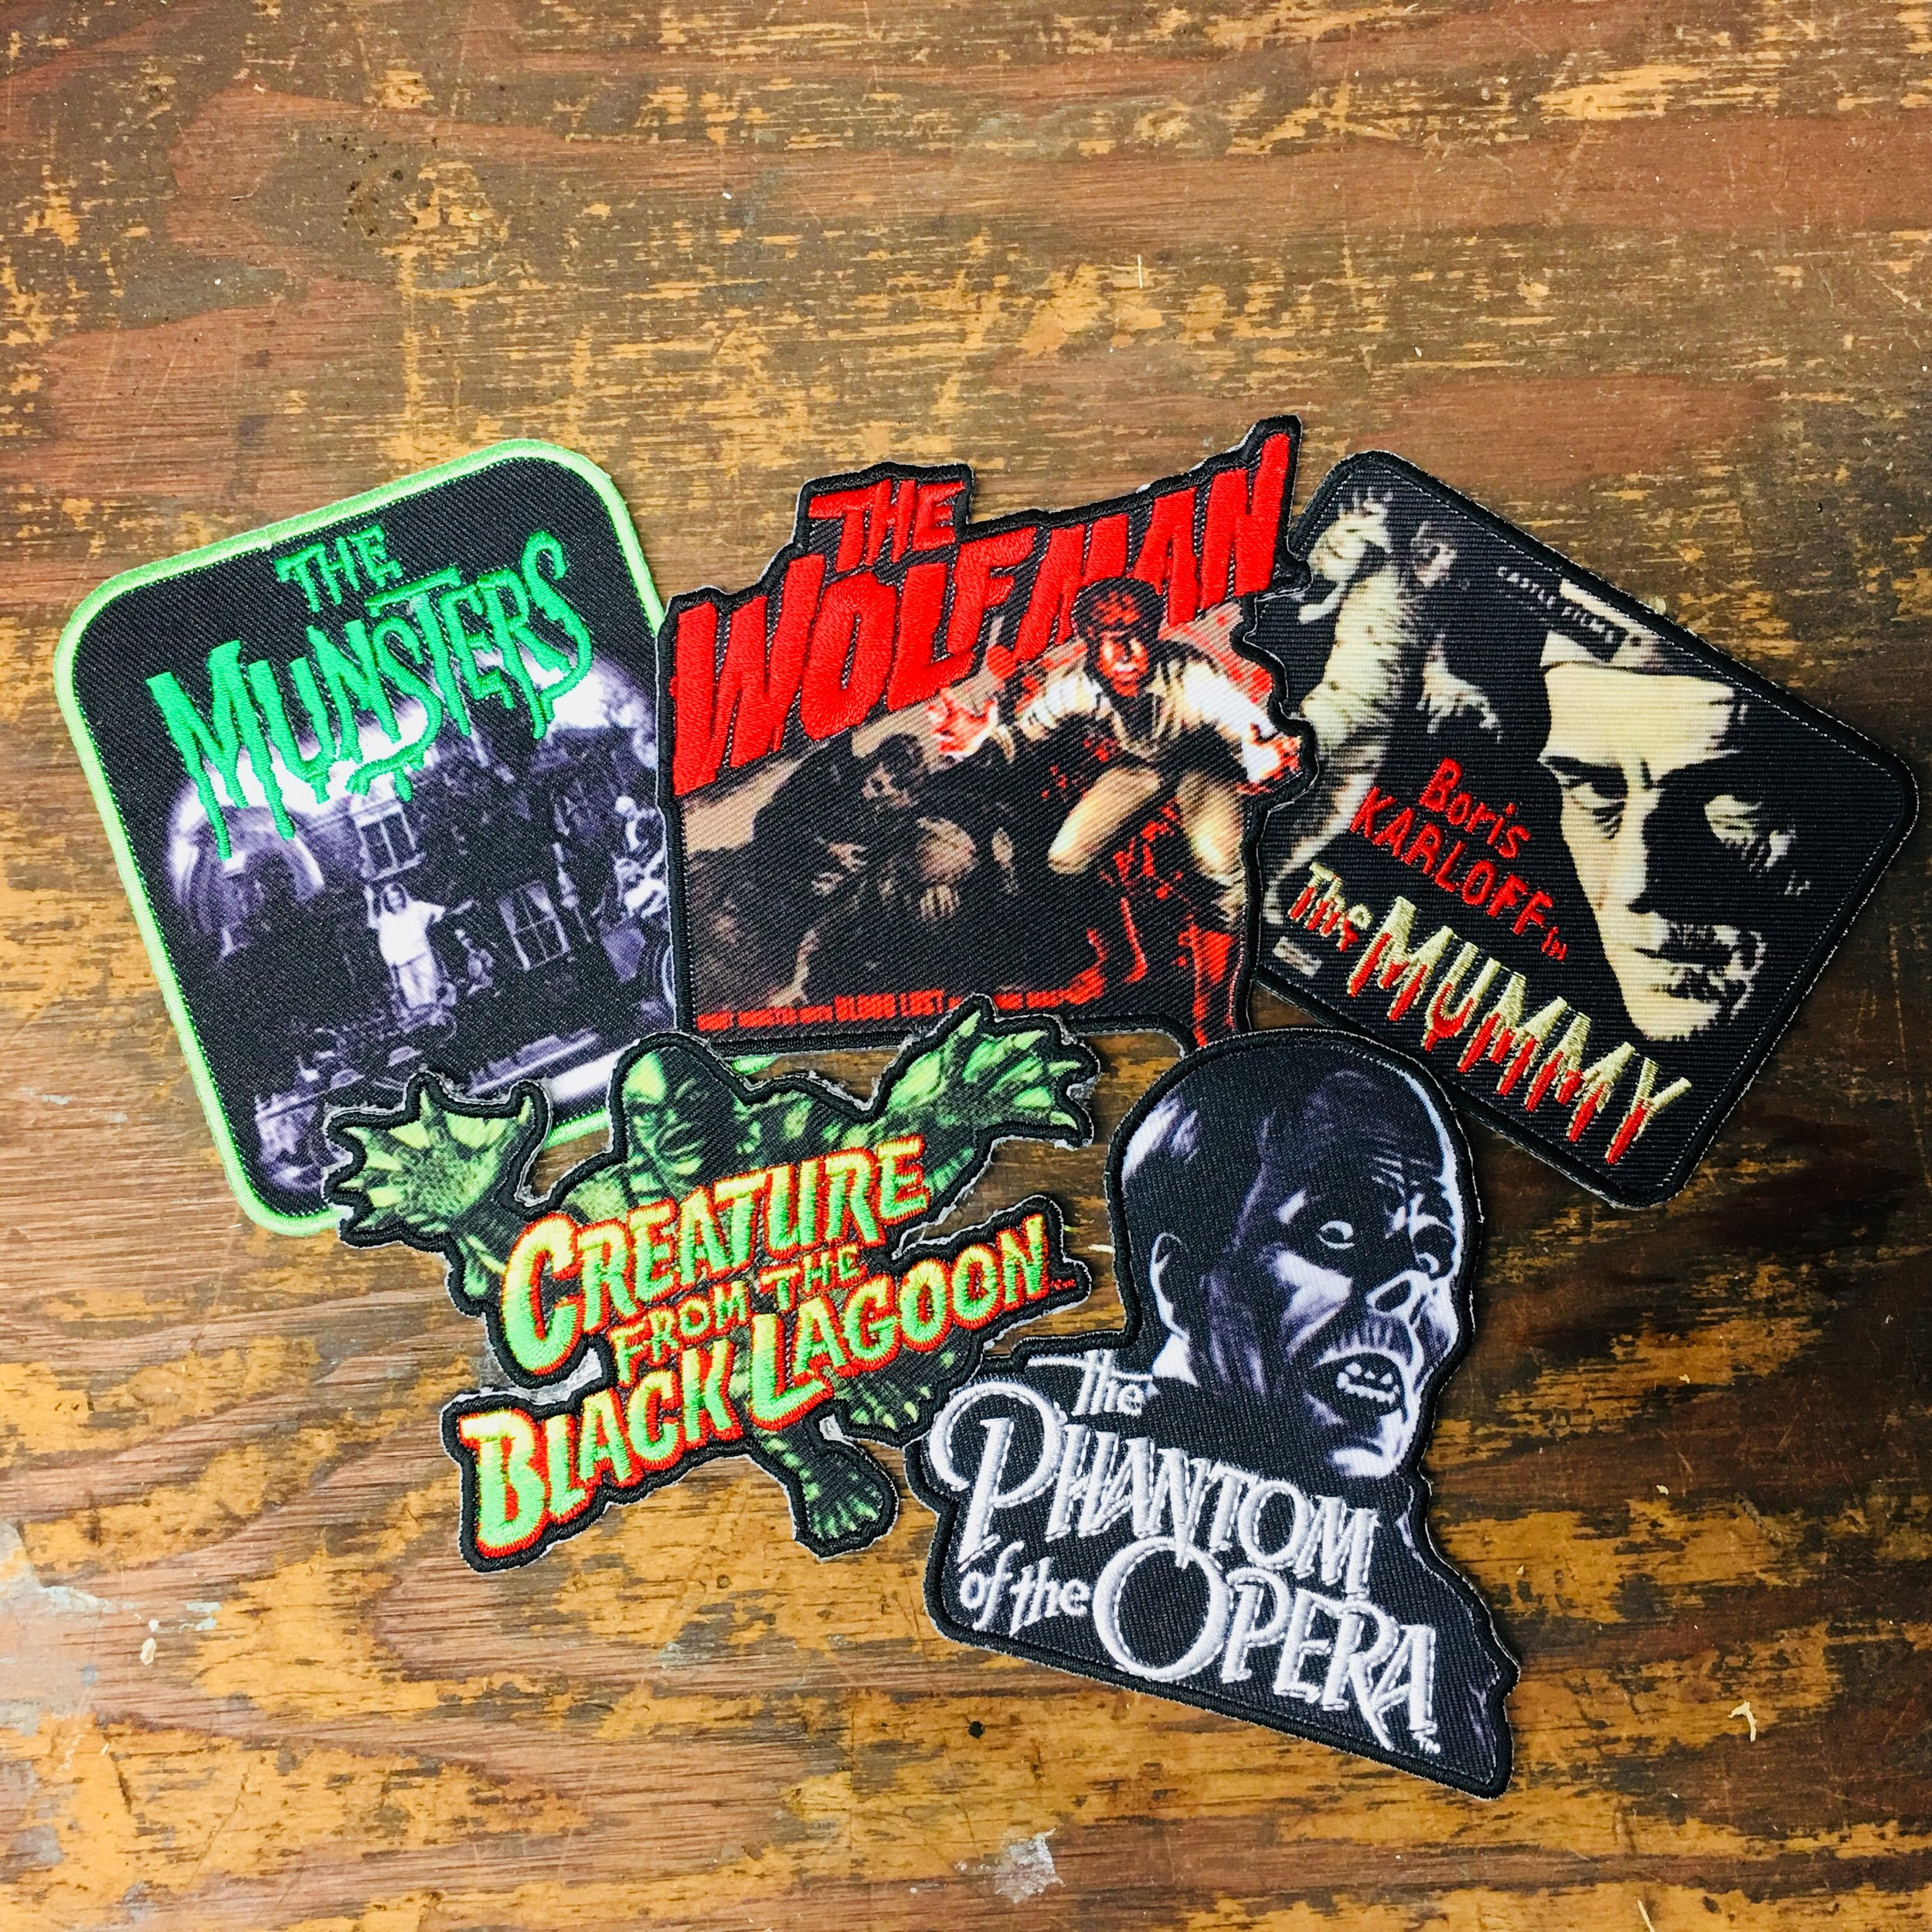 Custom-Printed-Embroidered-Patches.jpg